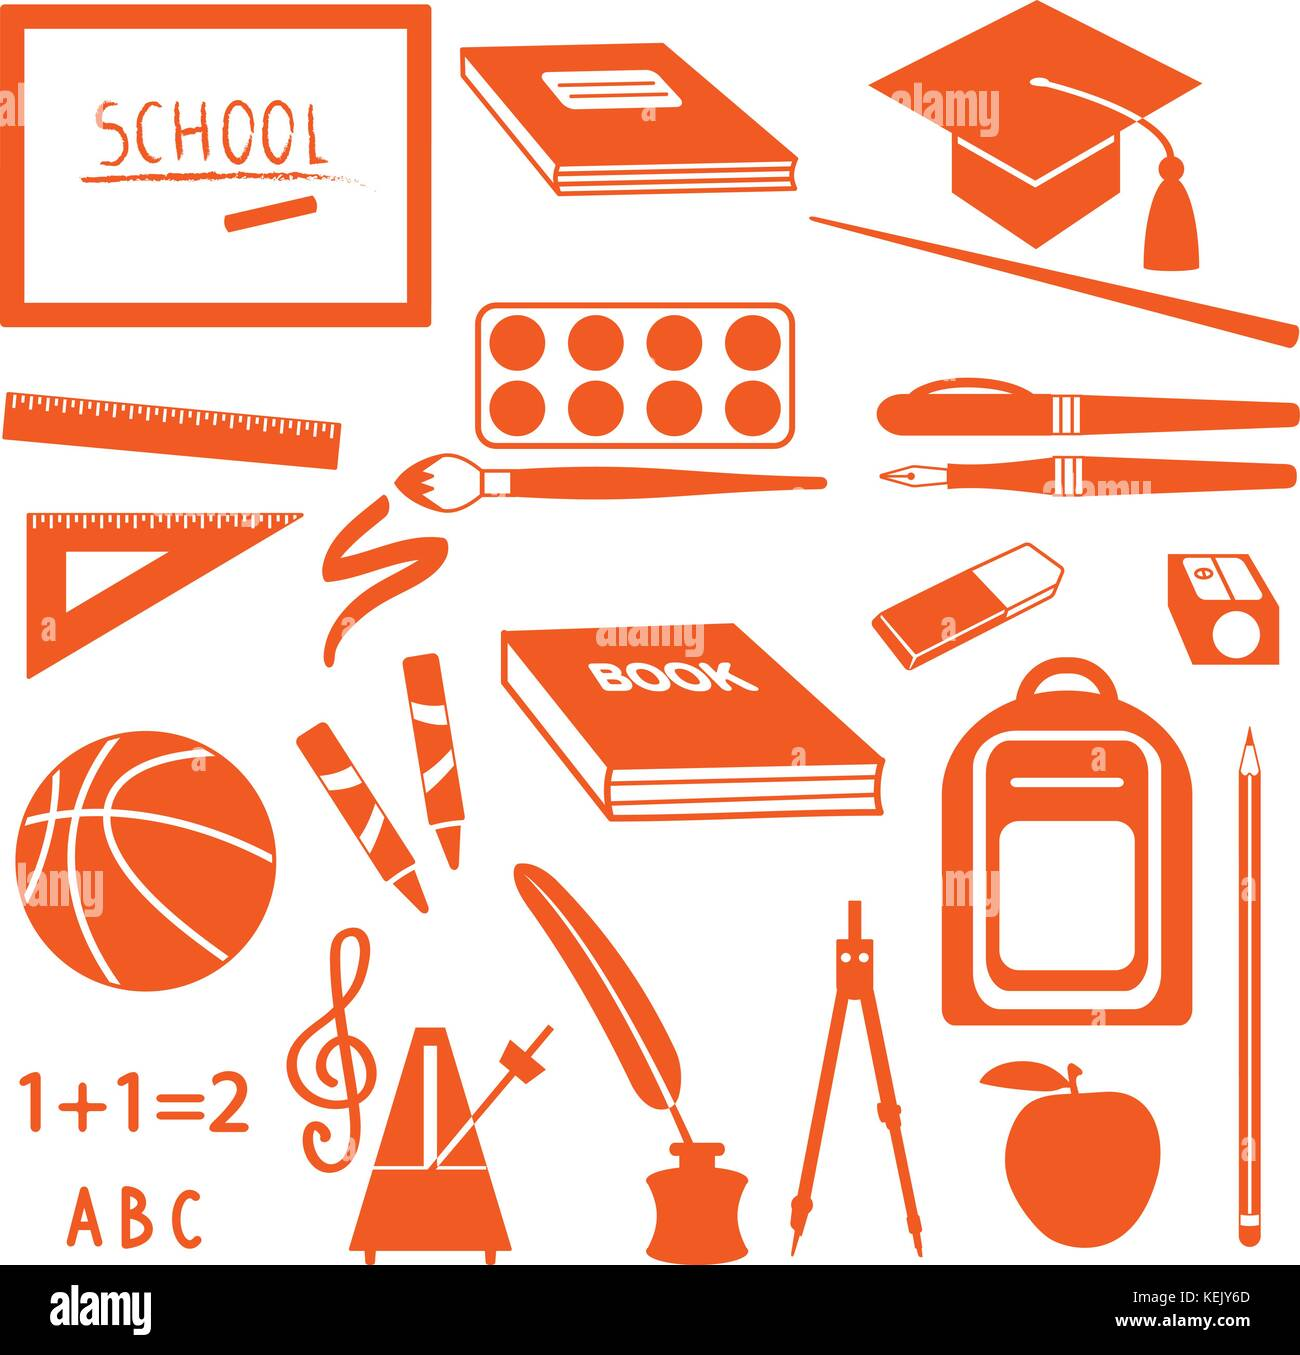 School symbols and supplies vector icons. - Stock Image